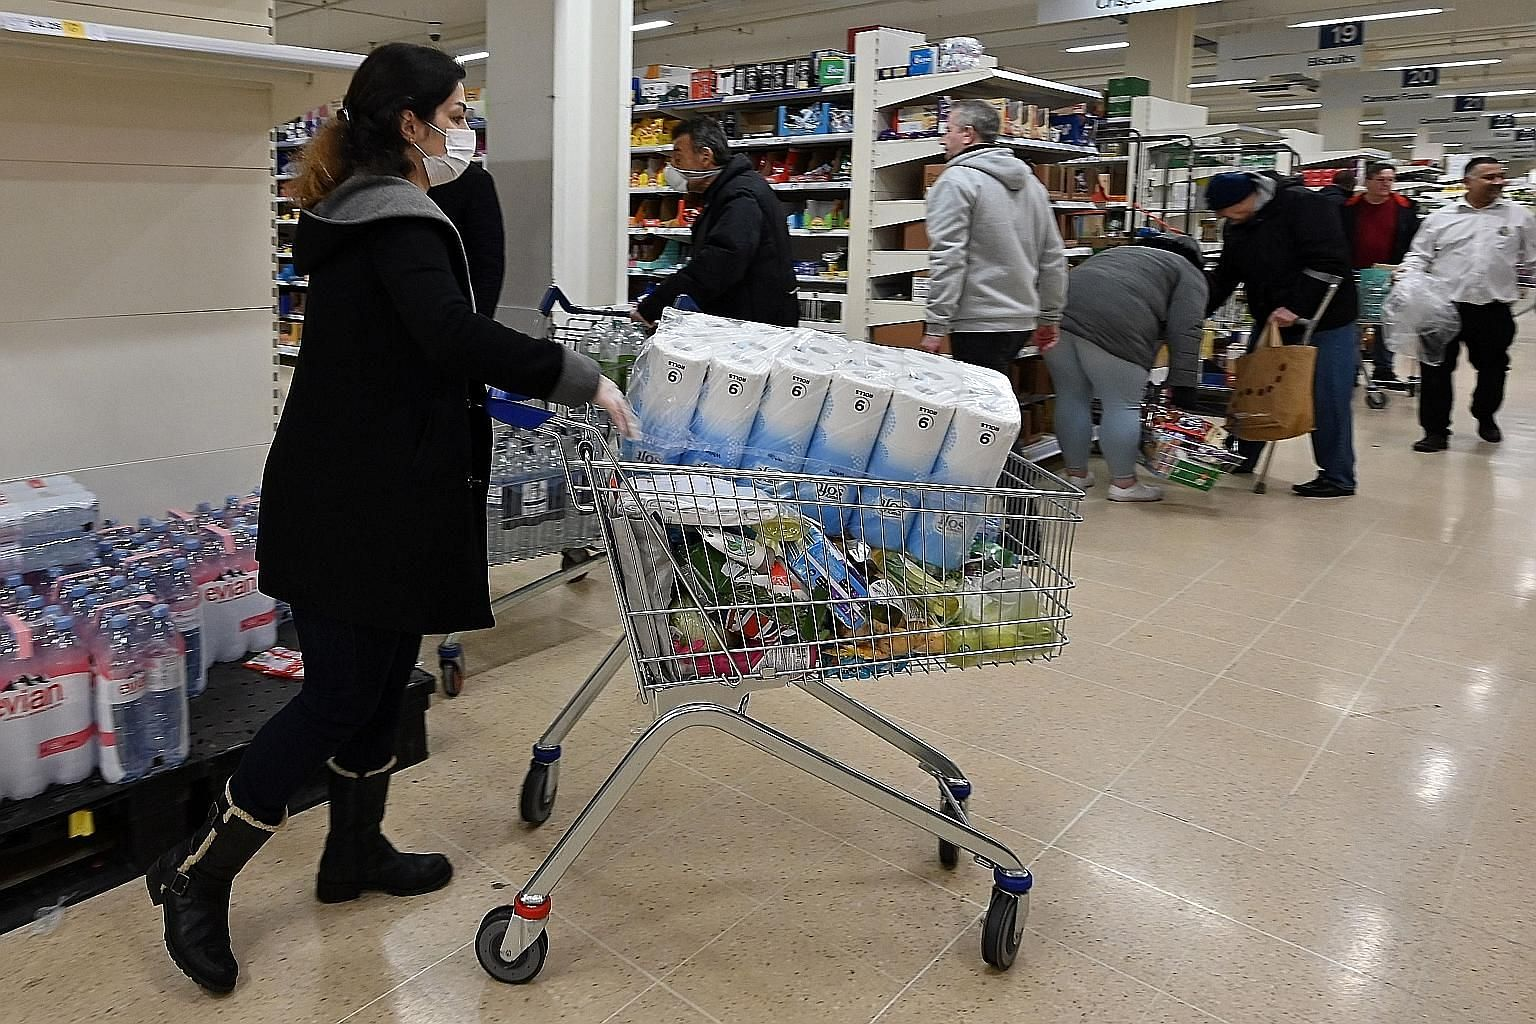 A woman wearing a face mask carting away toilet paper at a supermarket in London last Saturday. Consumers, worried about shortages during the pandemic, have started stockpiling household products.